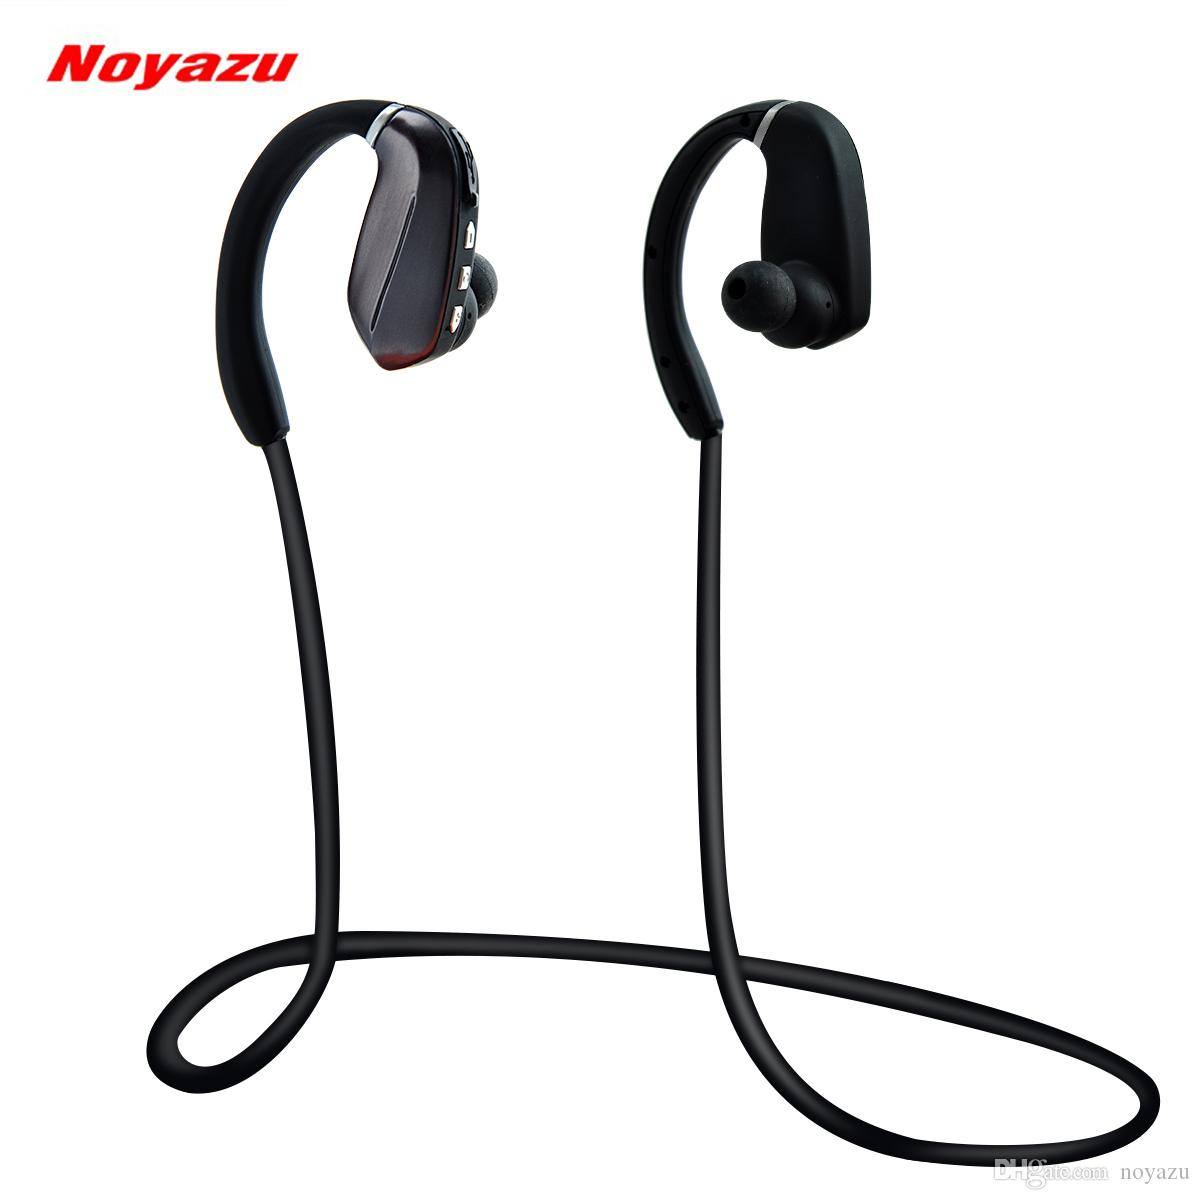 Noyazu Rw 03 Wireless Bluetooth Glowing Headphones Cell Headset With ...